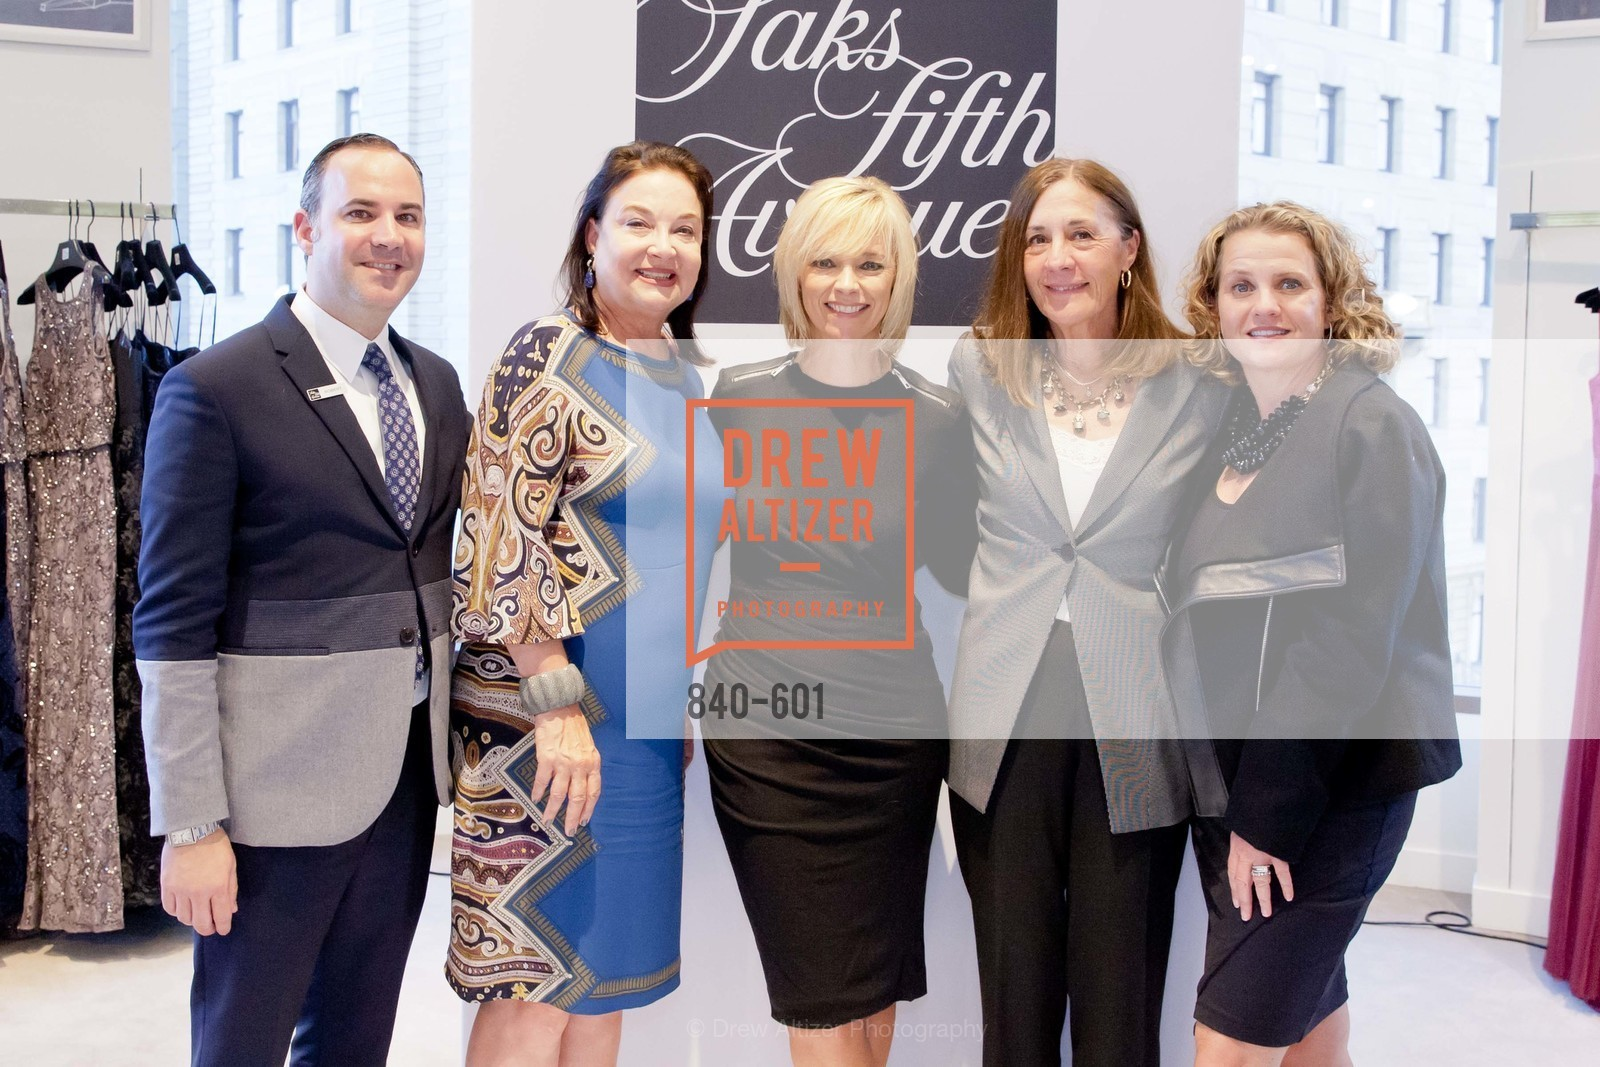 Robert Arnold-Kraft, Elizabeth Merrill, Avril Graham, Melissa Tulp, SAKS FIFTH AVENUE and HARPER'S BAZAAR Host the San Francisco Yacht Club, US, October 9th, 2014,Drew Altizer, Drew Altizer Photography, full-service agency, private events, San Francisco photographer, photographer california